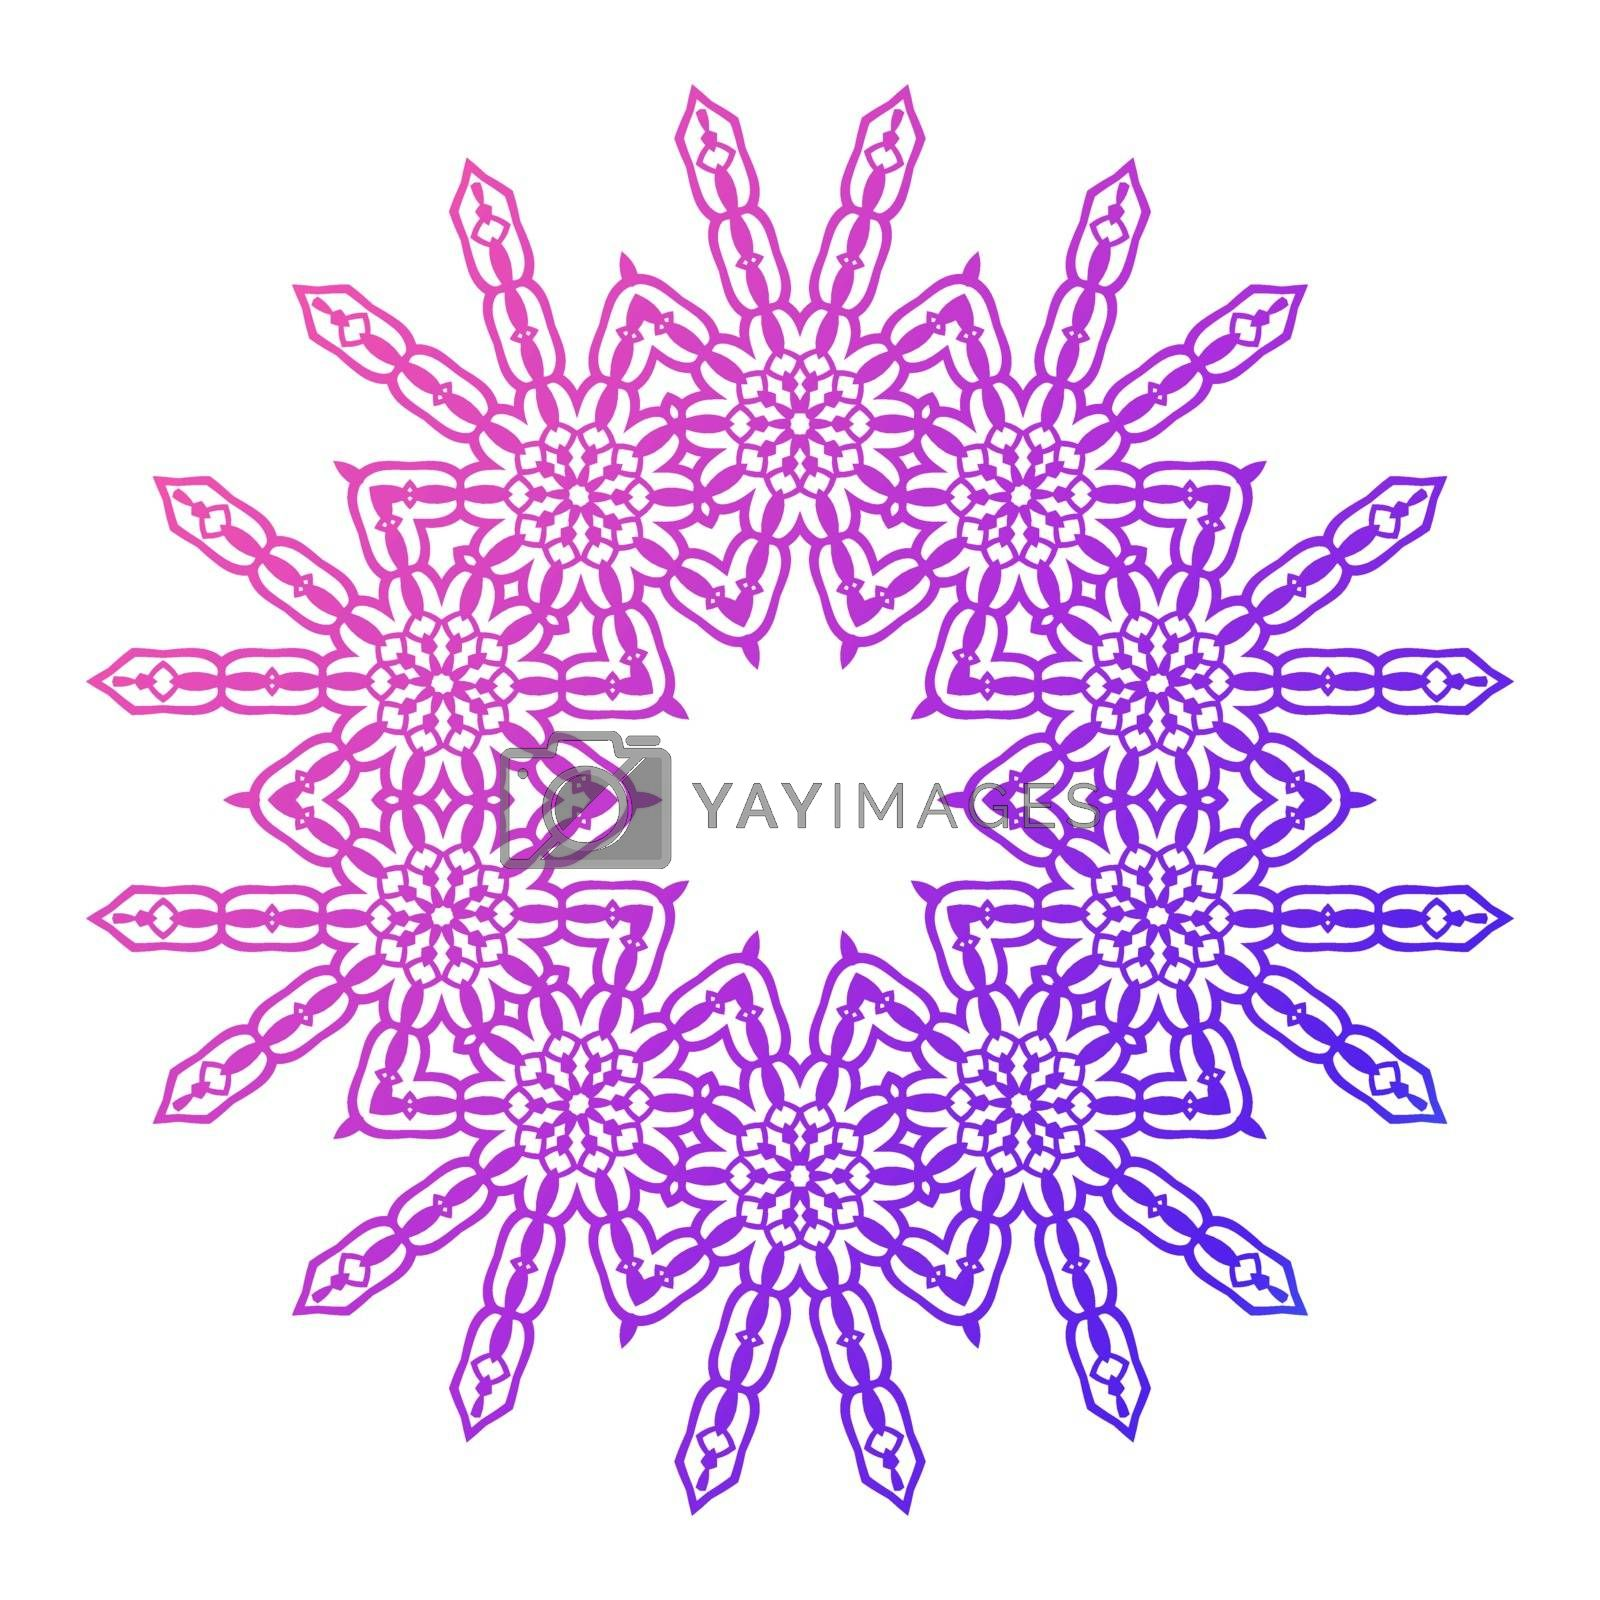 Mandala. Vintage decorative elements. Hand drawn background. Islam, Arabic Indian ottoman motifs